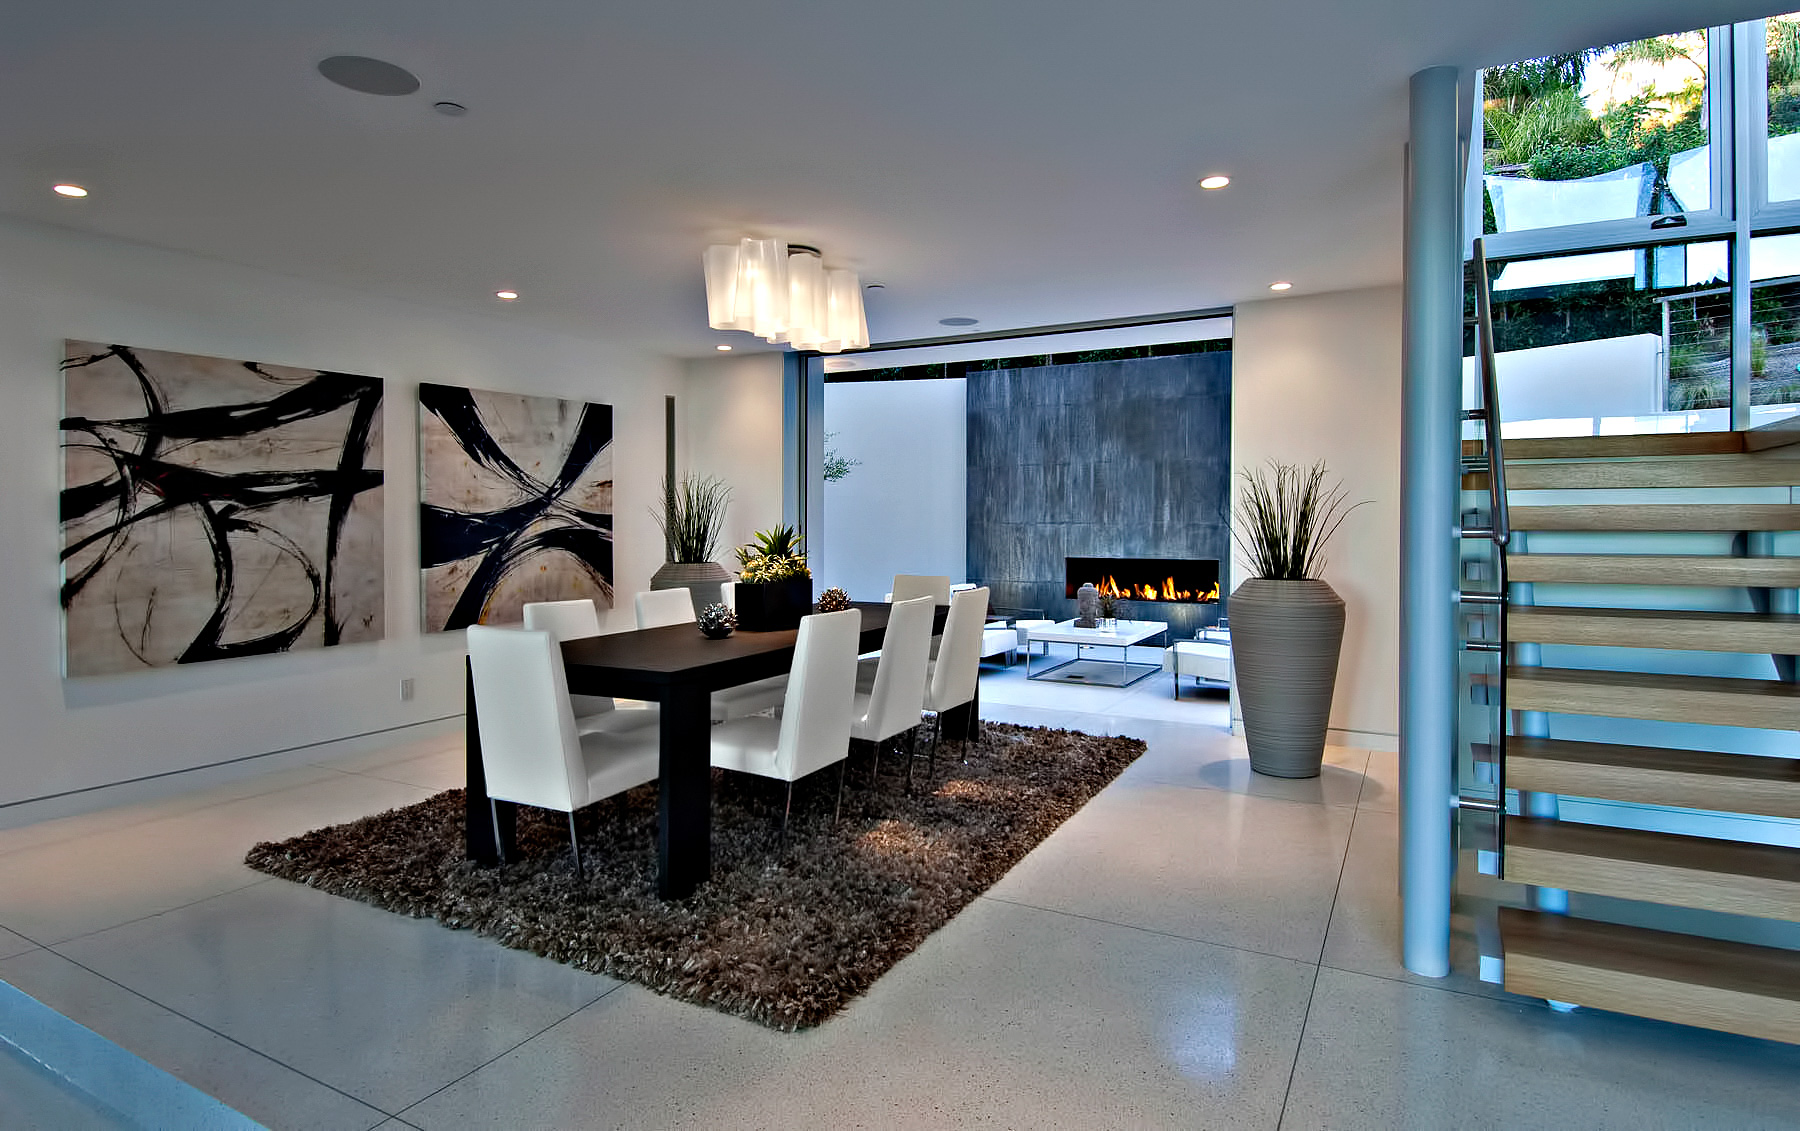 Hollywood Hills Modern - 1734 N Doheny Dr, Los Angeles, CA, USA